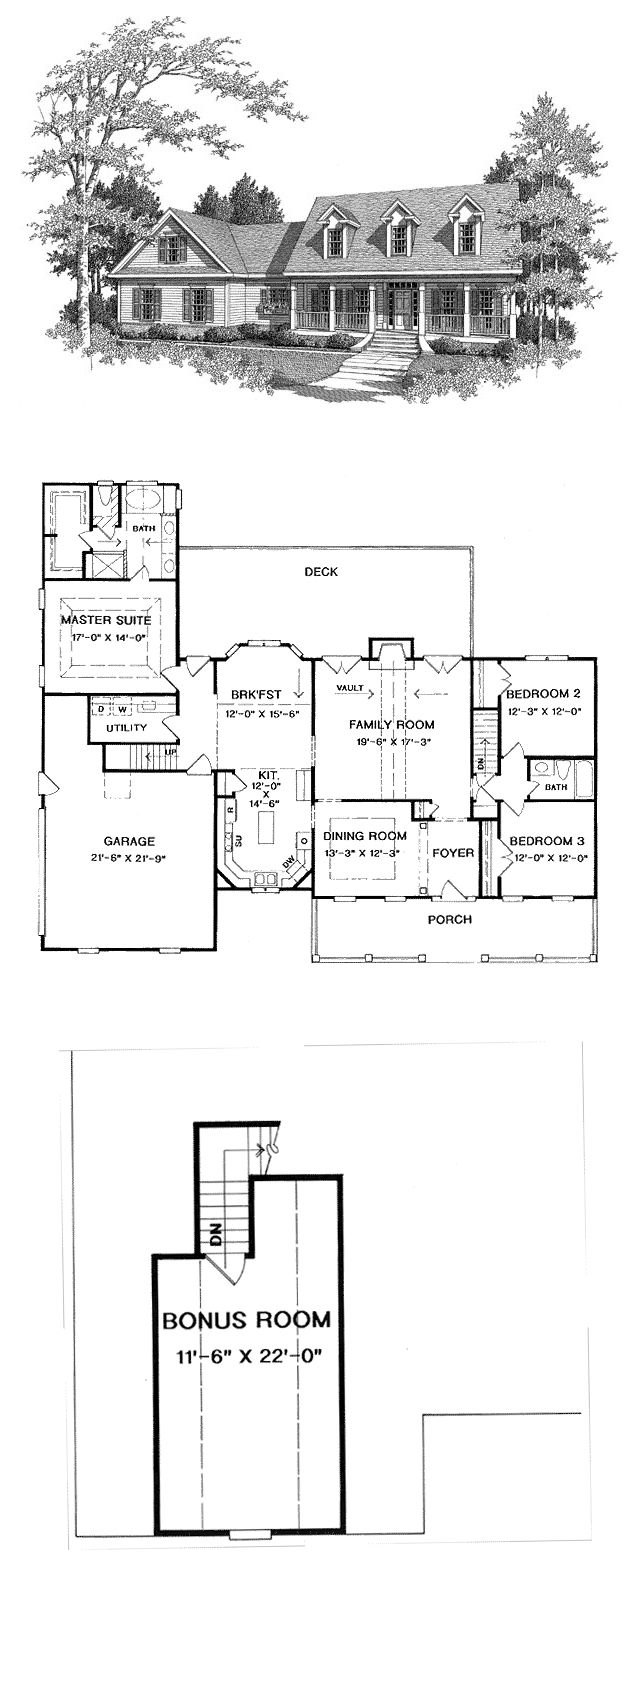 Cape cod house plan 58165 for Small cape cod house plans under 1000 sq ft